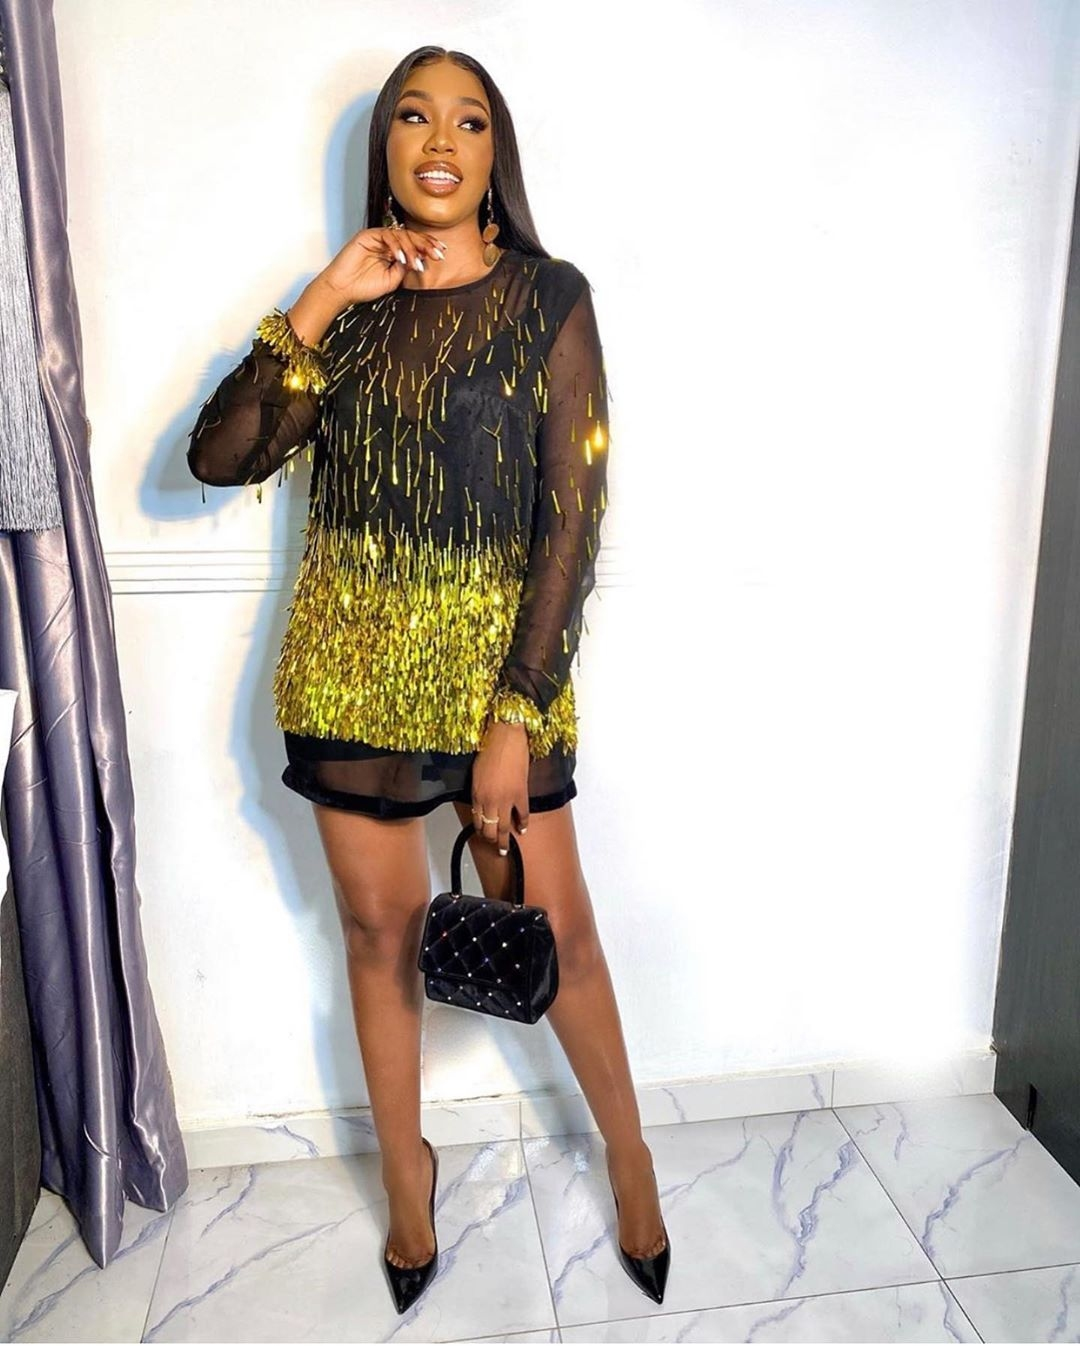 sharon-ooja-black-gold-short-dress-21-valentines-day-outfit-ideas-that-will-have-him-wowed